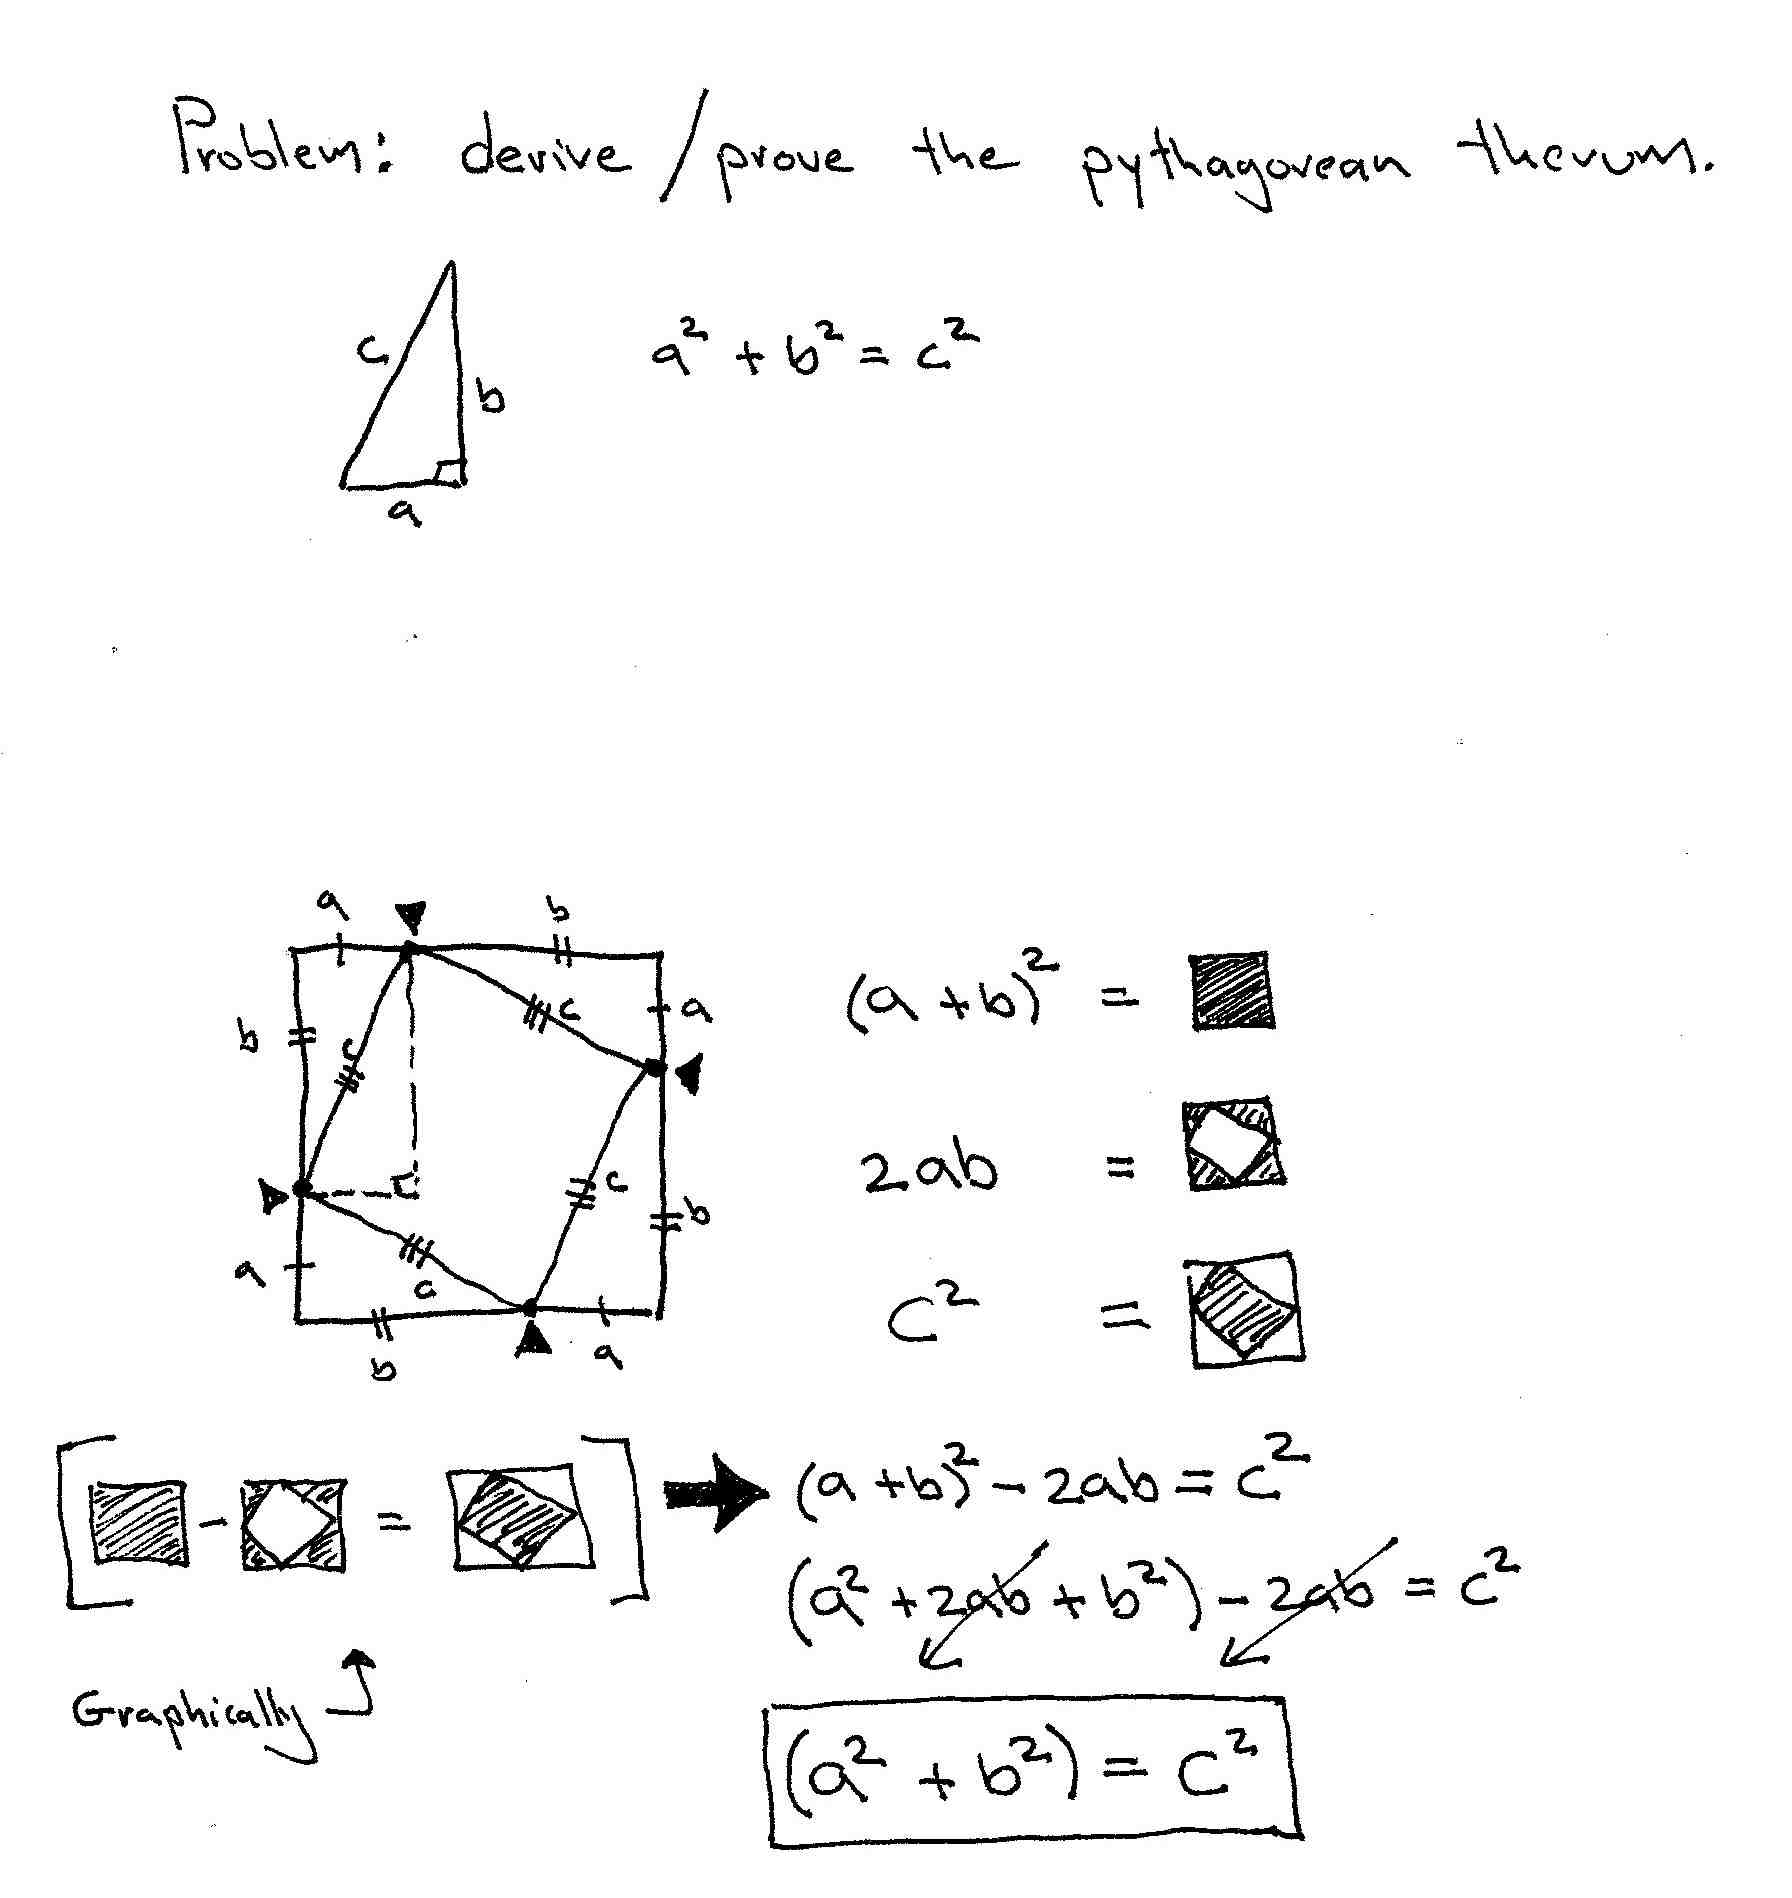 worksheet Pythagorean Theorem Puzzle Worksheet pythagorean puzzle worksheet abitlikethis voir limage dans sa taille 760 x 541 6 kb